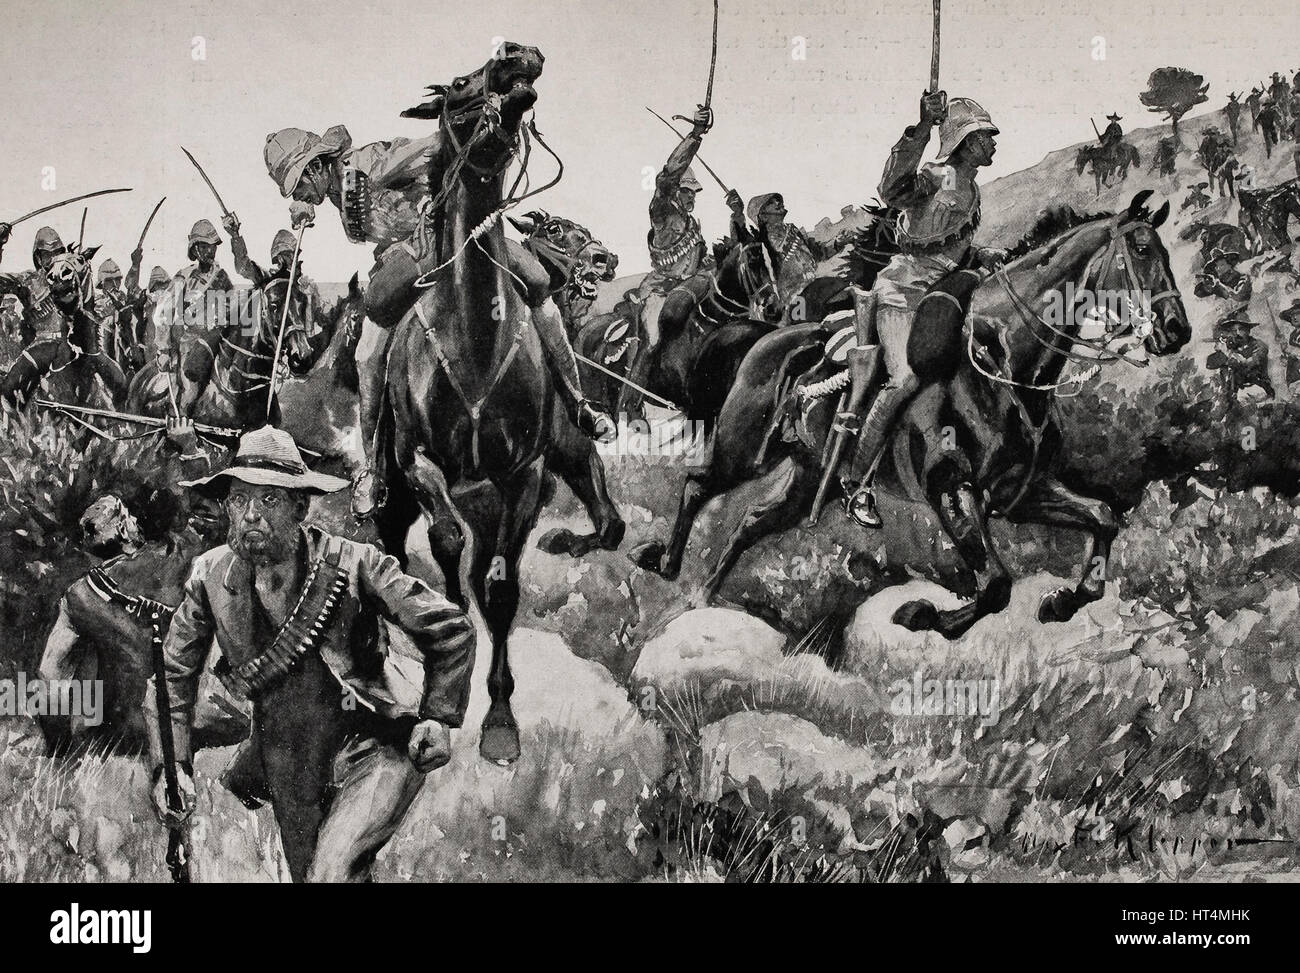 British lancers cutting off retreat of the Boers after the Battle of Elandslaagte, October 21, 1899 - Stock Image